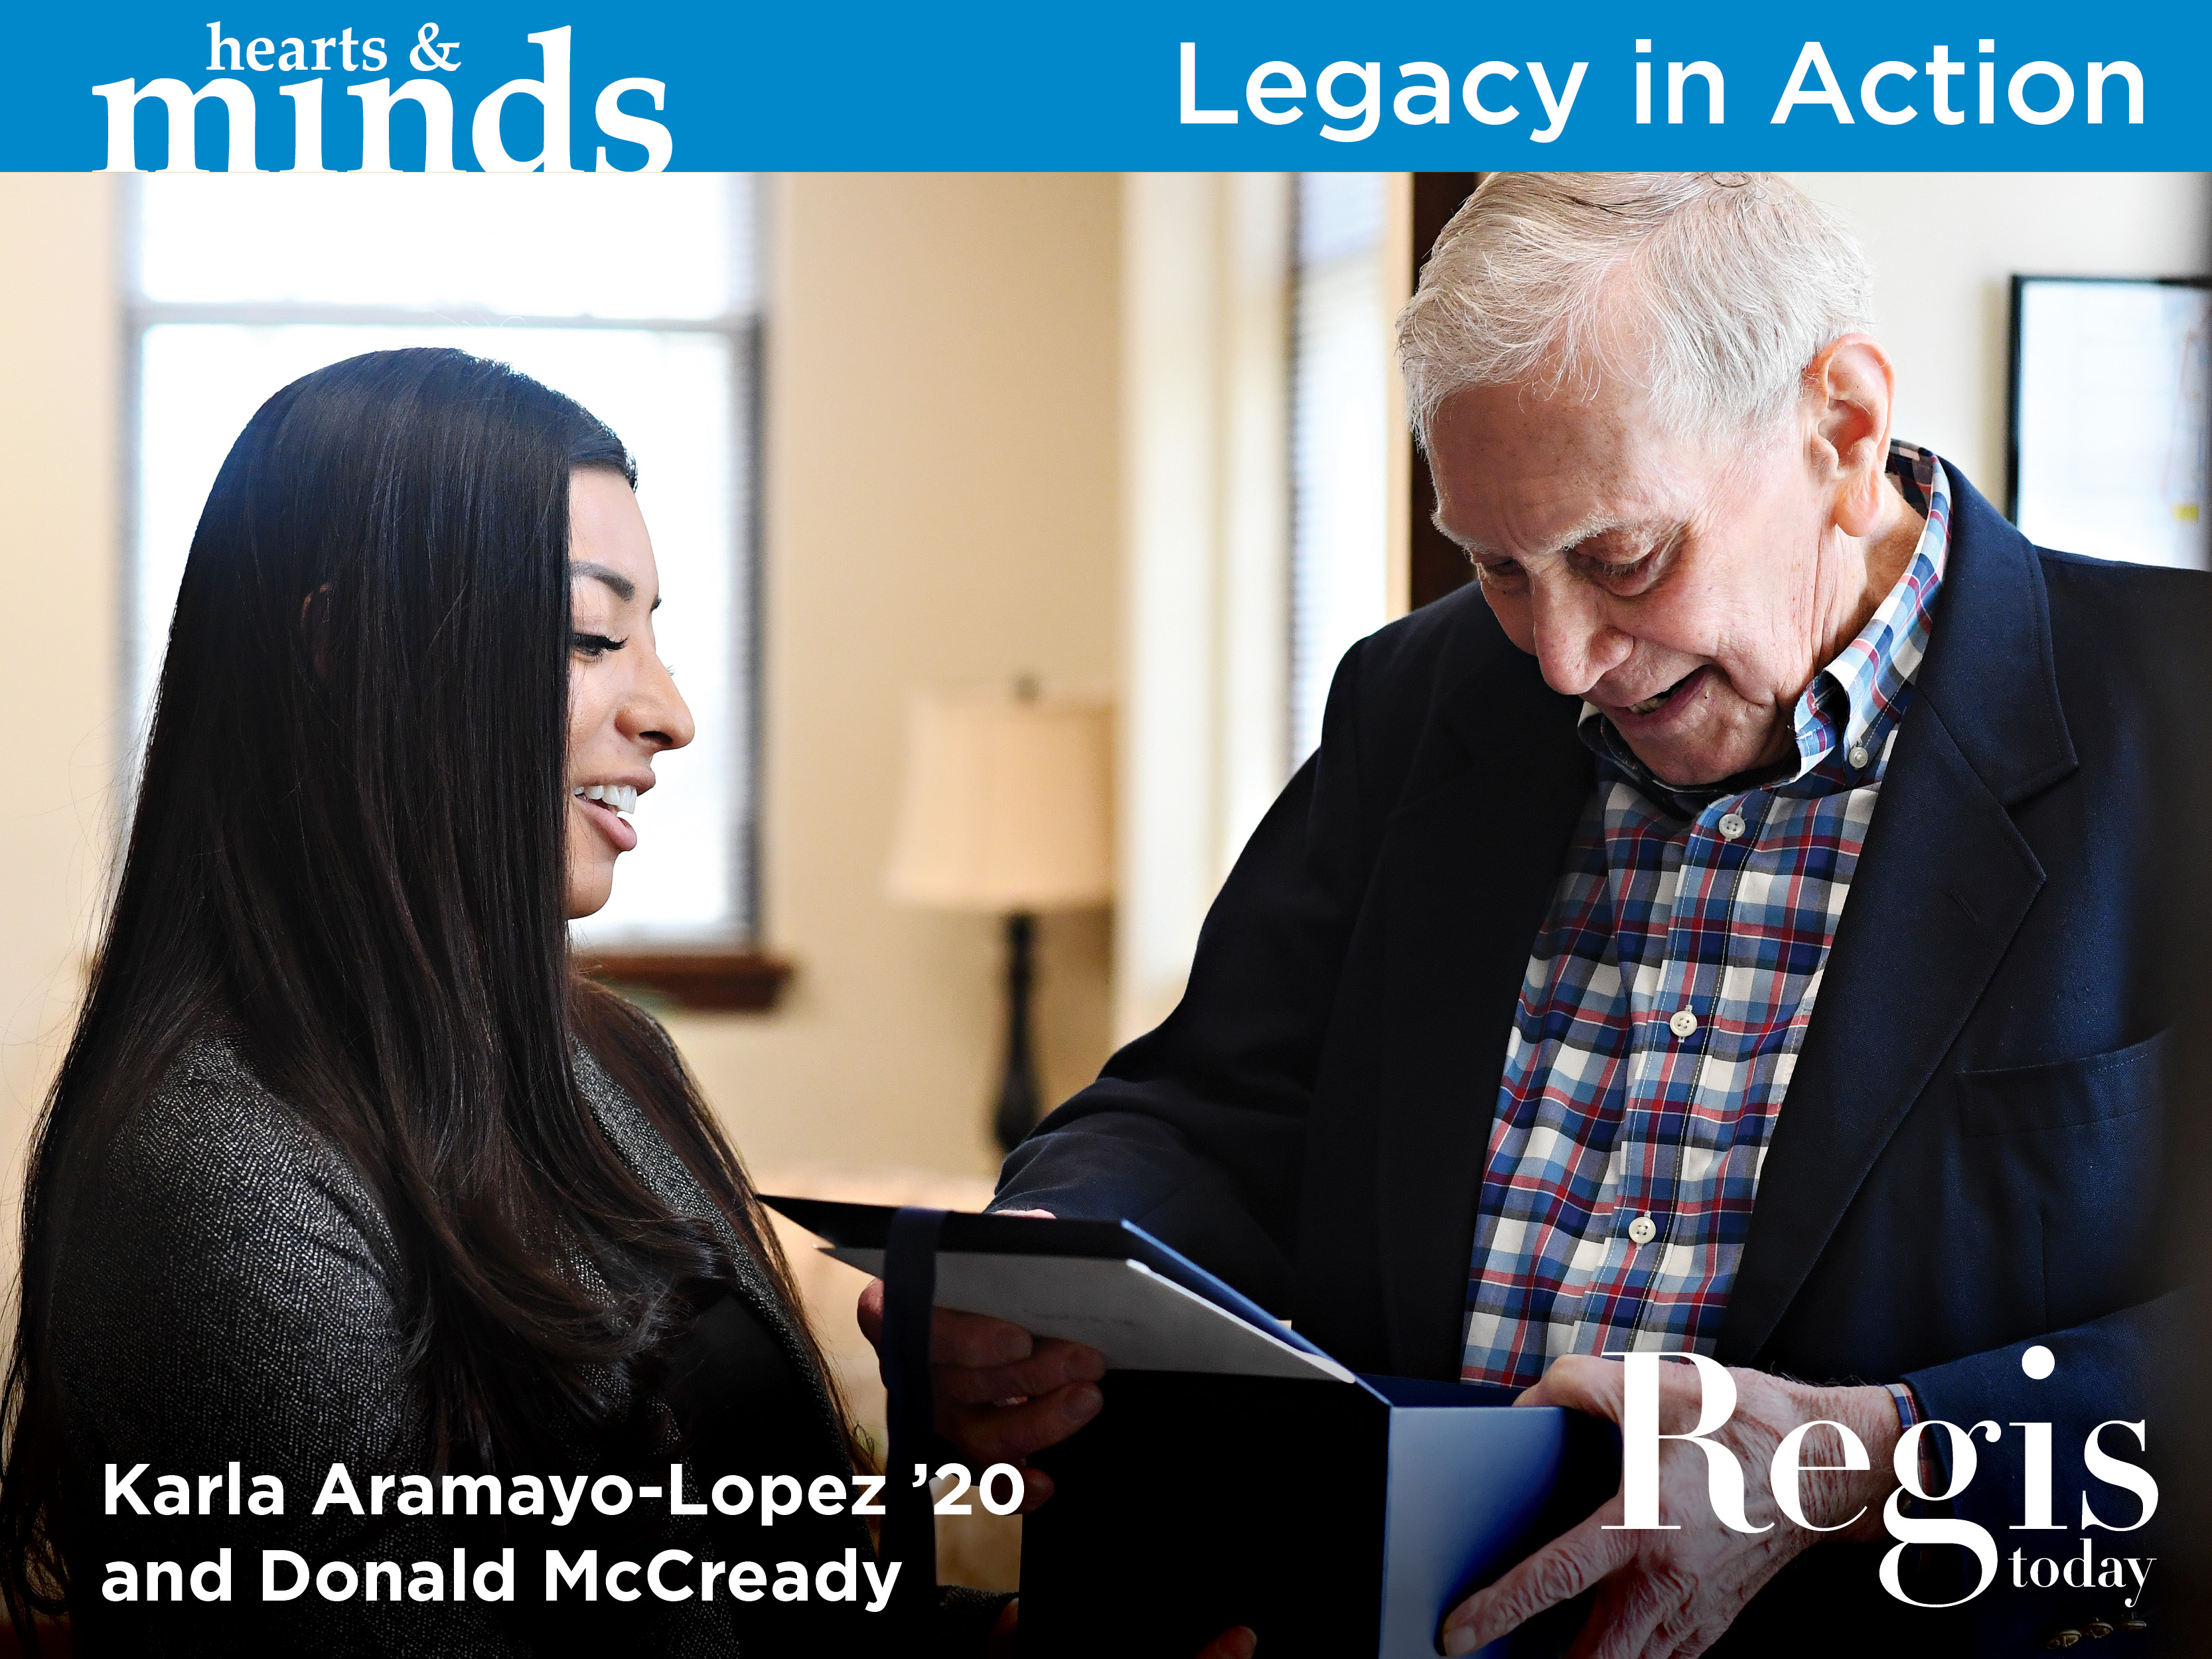 Legacy in Action | Regis Today Summer 2020